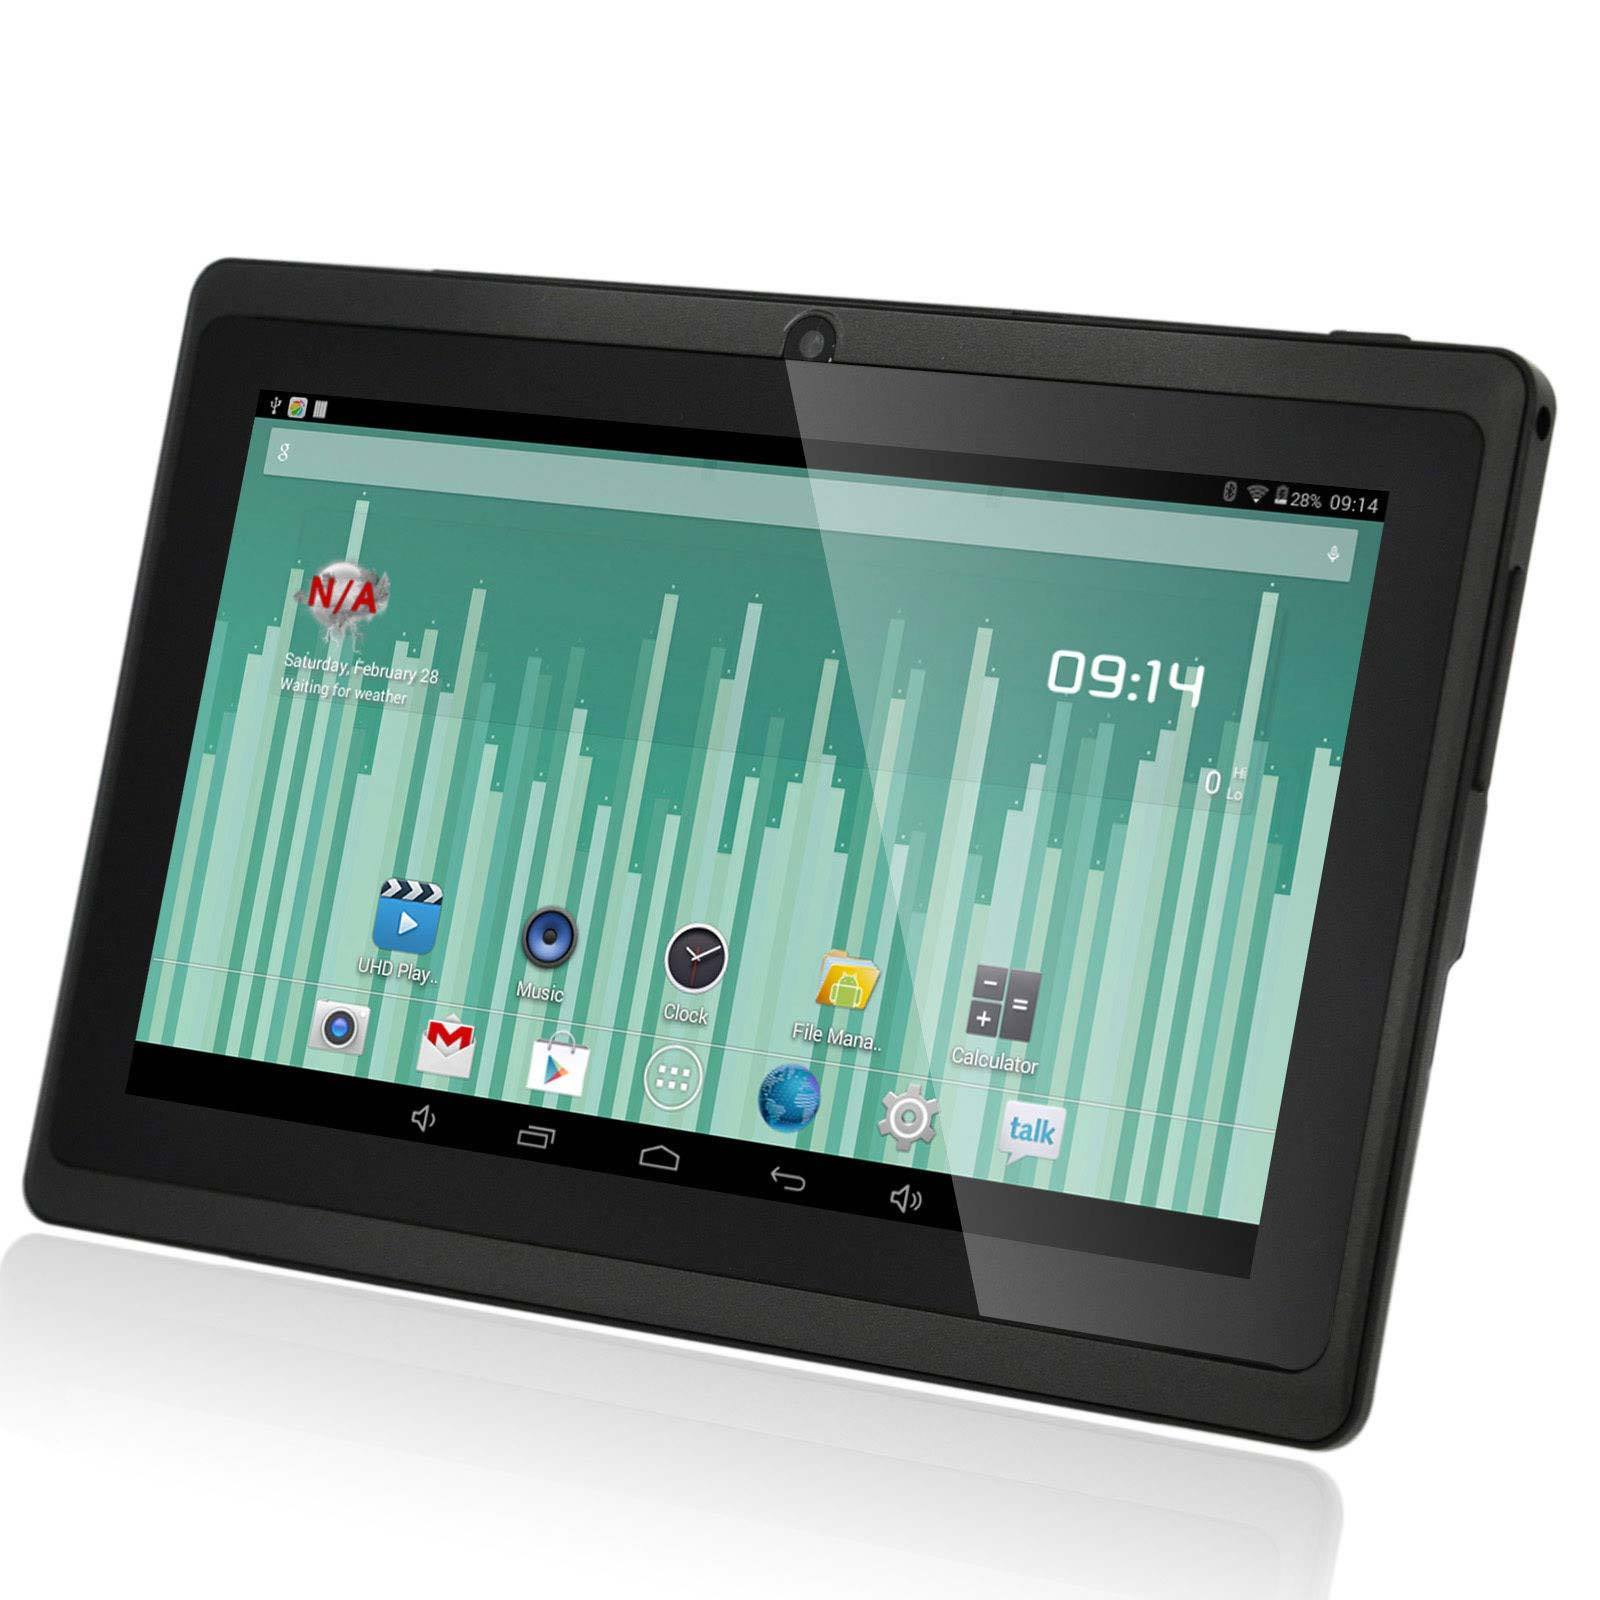 Fabrik Förderung Billig 7 Zoll Android Tablet PC Touchscreen WiFi Tablet 512 + 4 GB Android 4.4